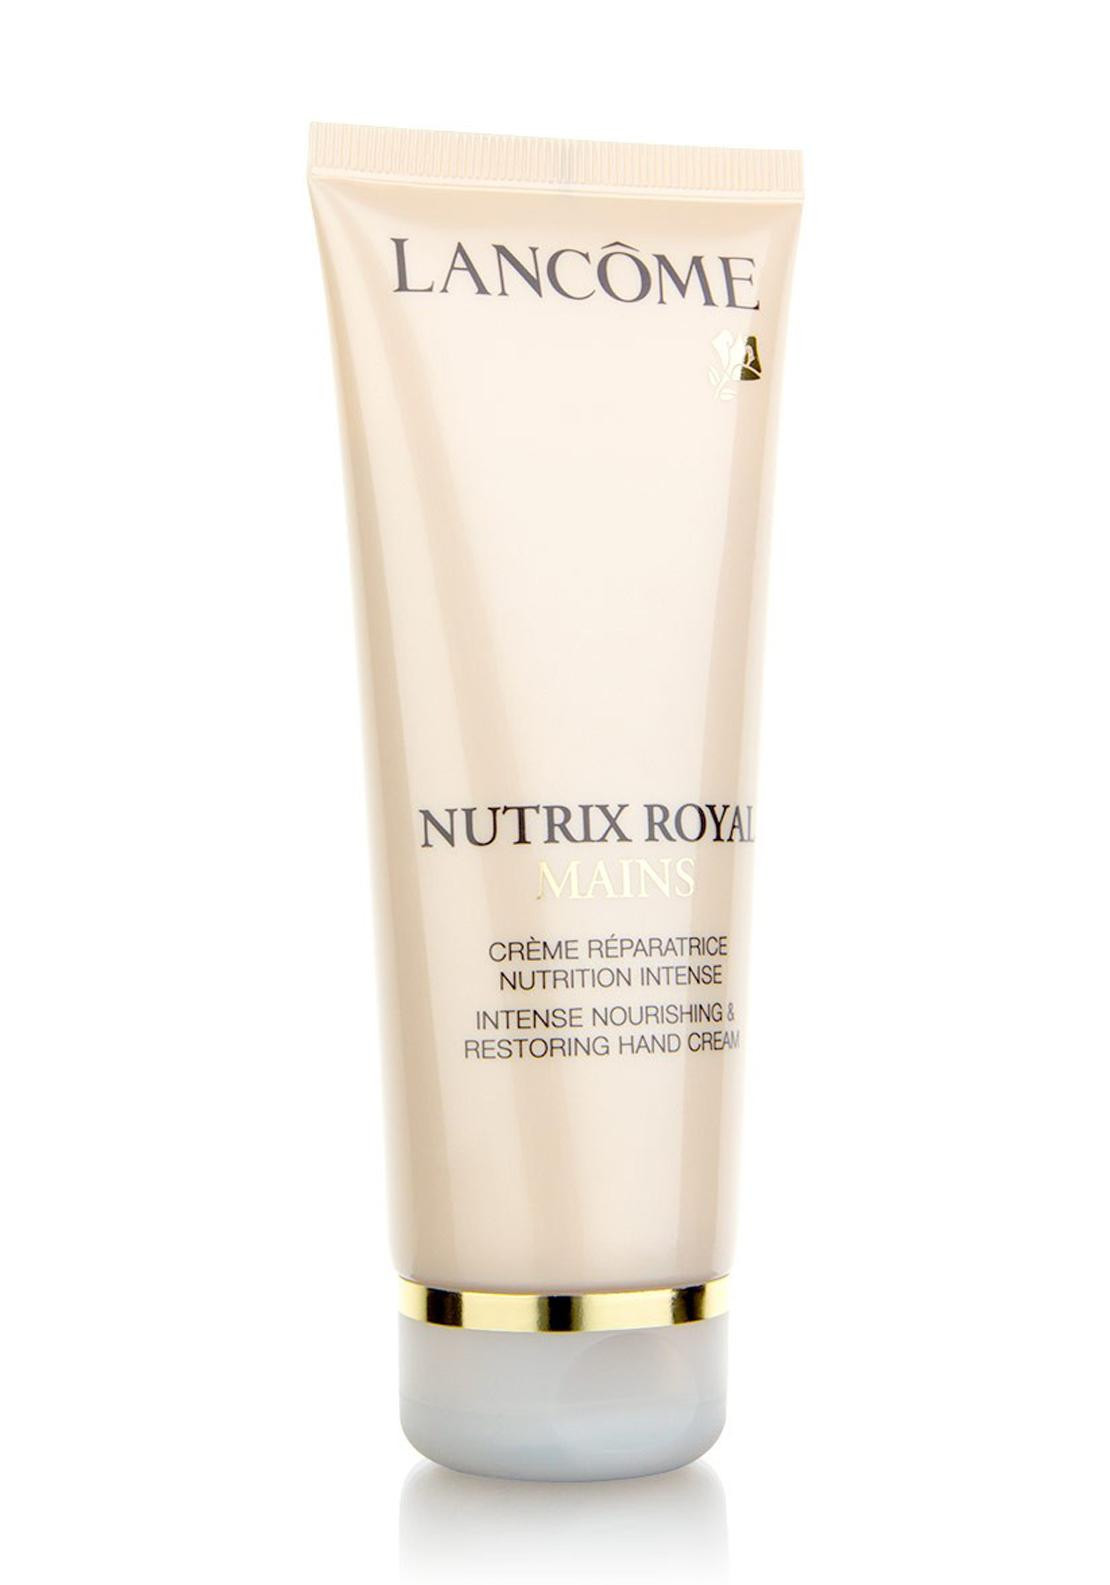 Lancôme Nutrix Royal Restoring Hand Cream, 100ml